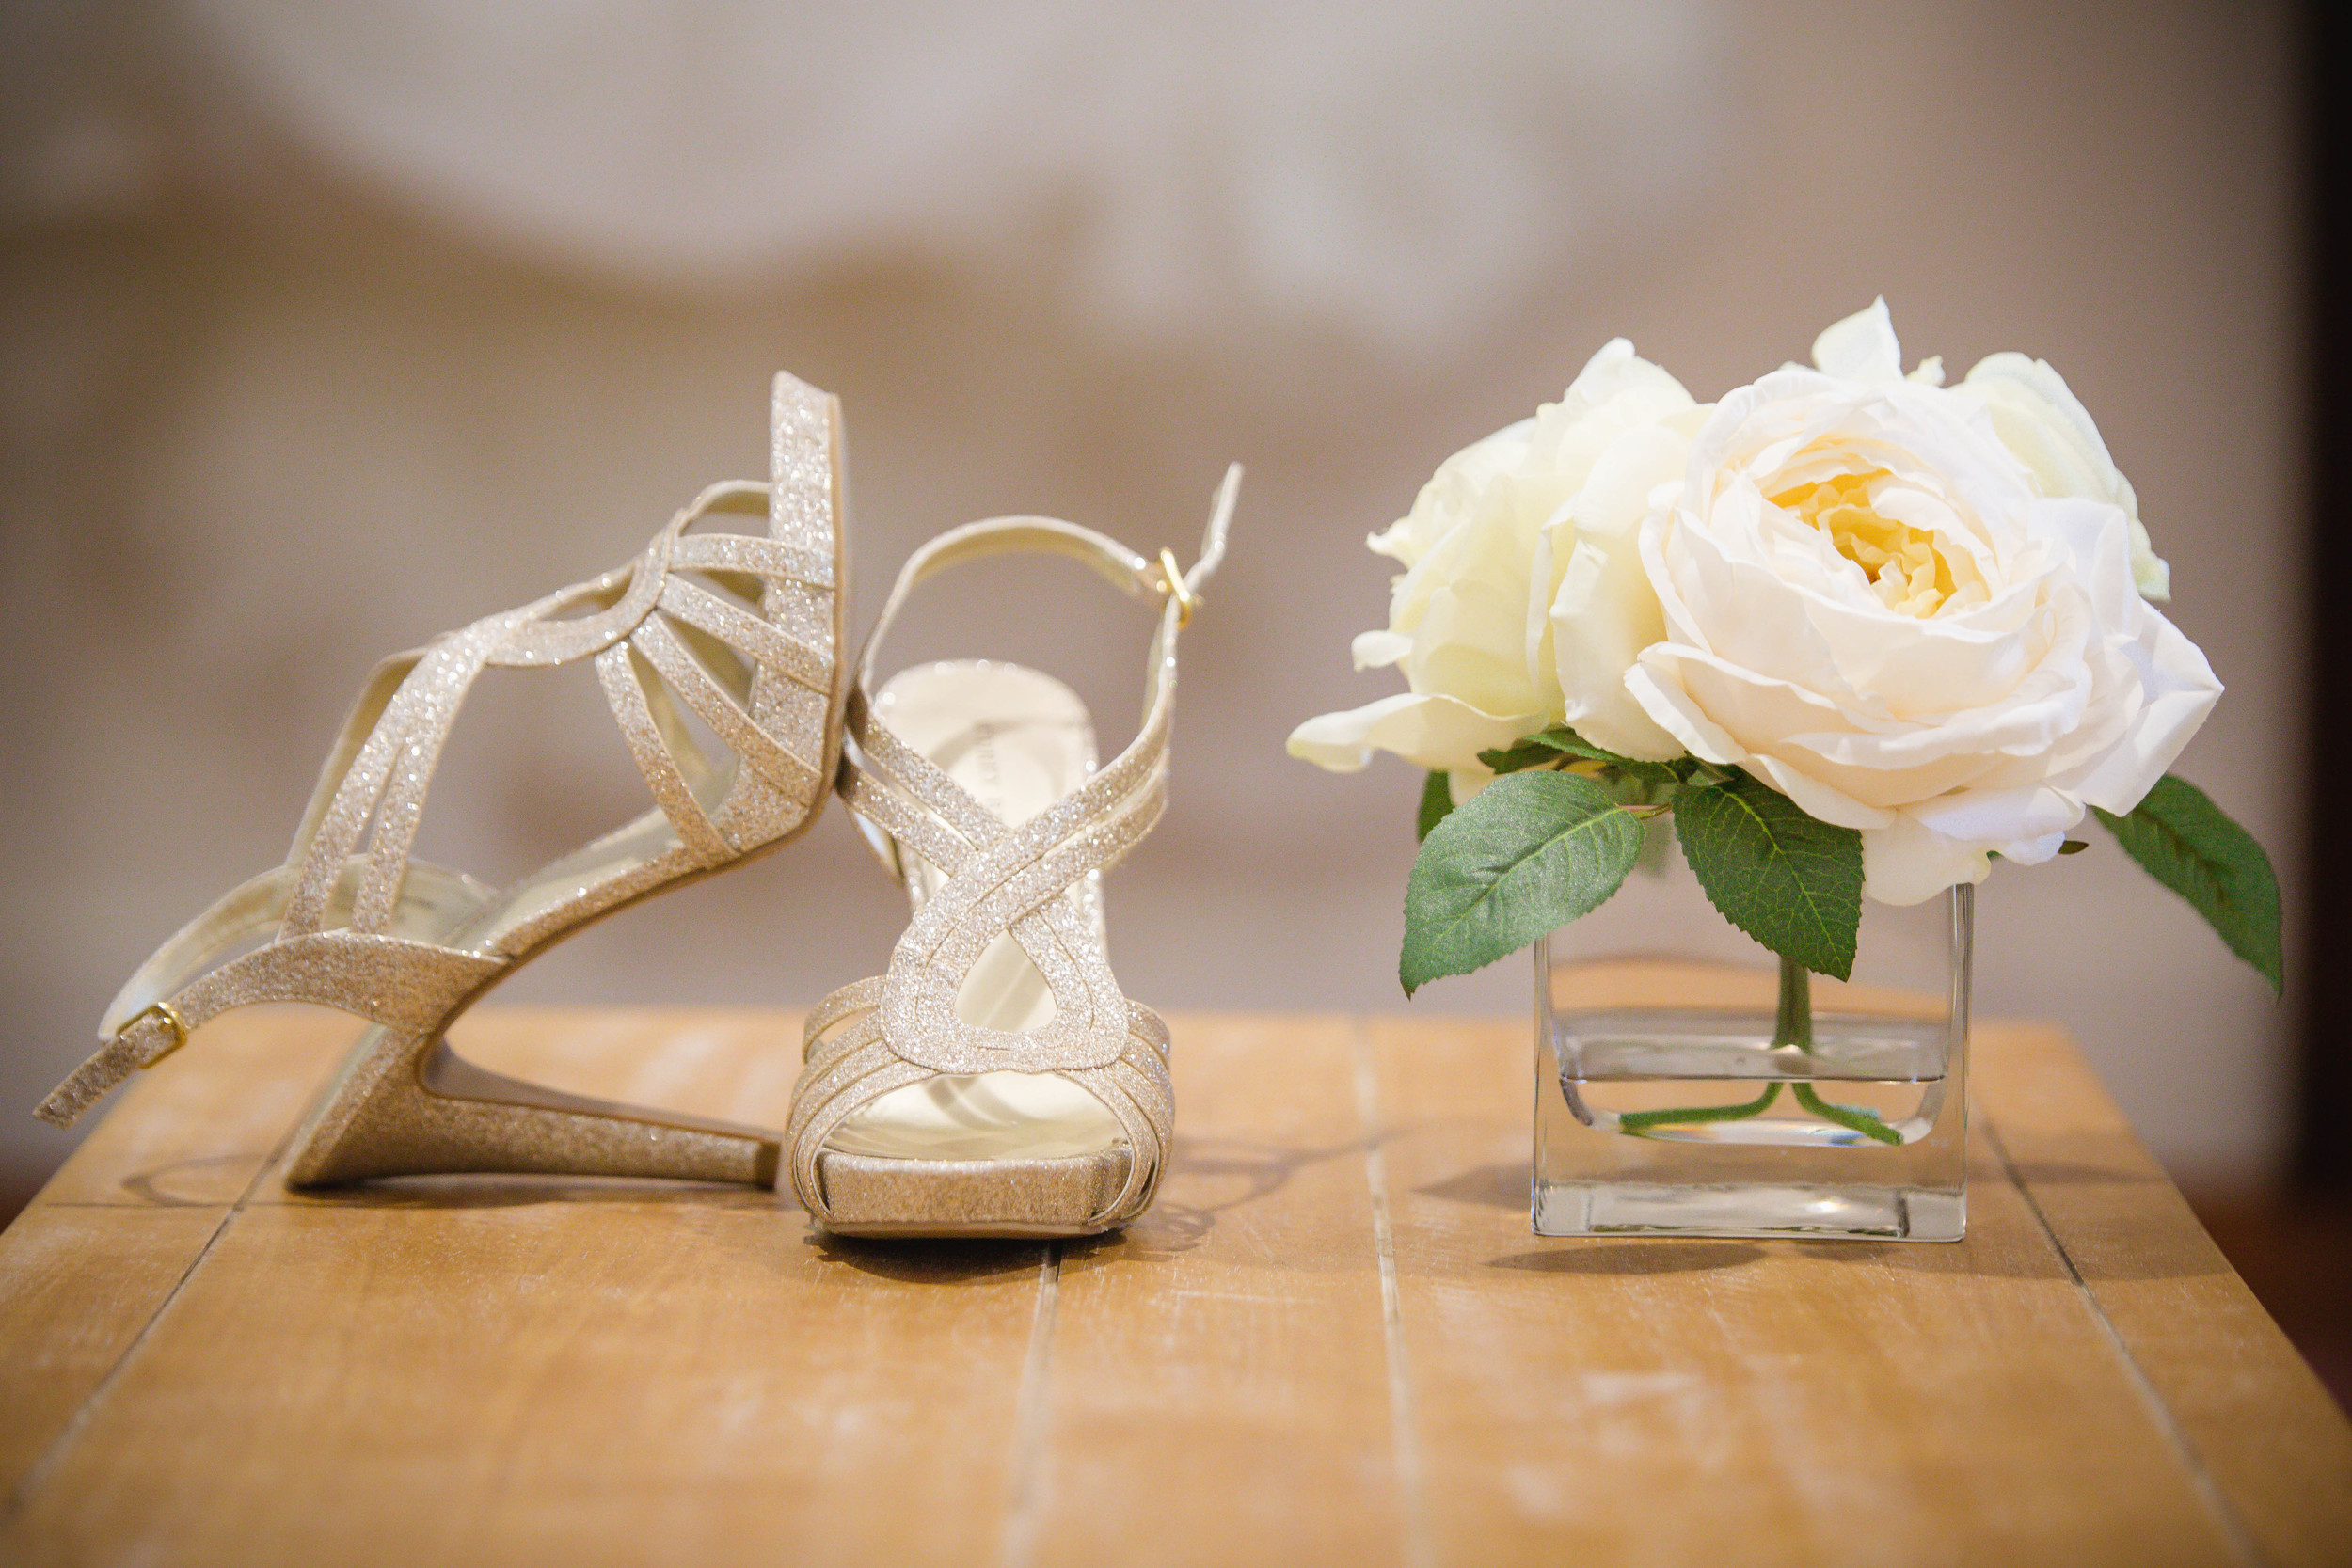 Shoes boquet nj wedding paramus englewood lodi hackensack washington.jpg